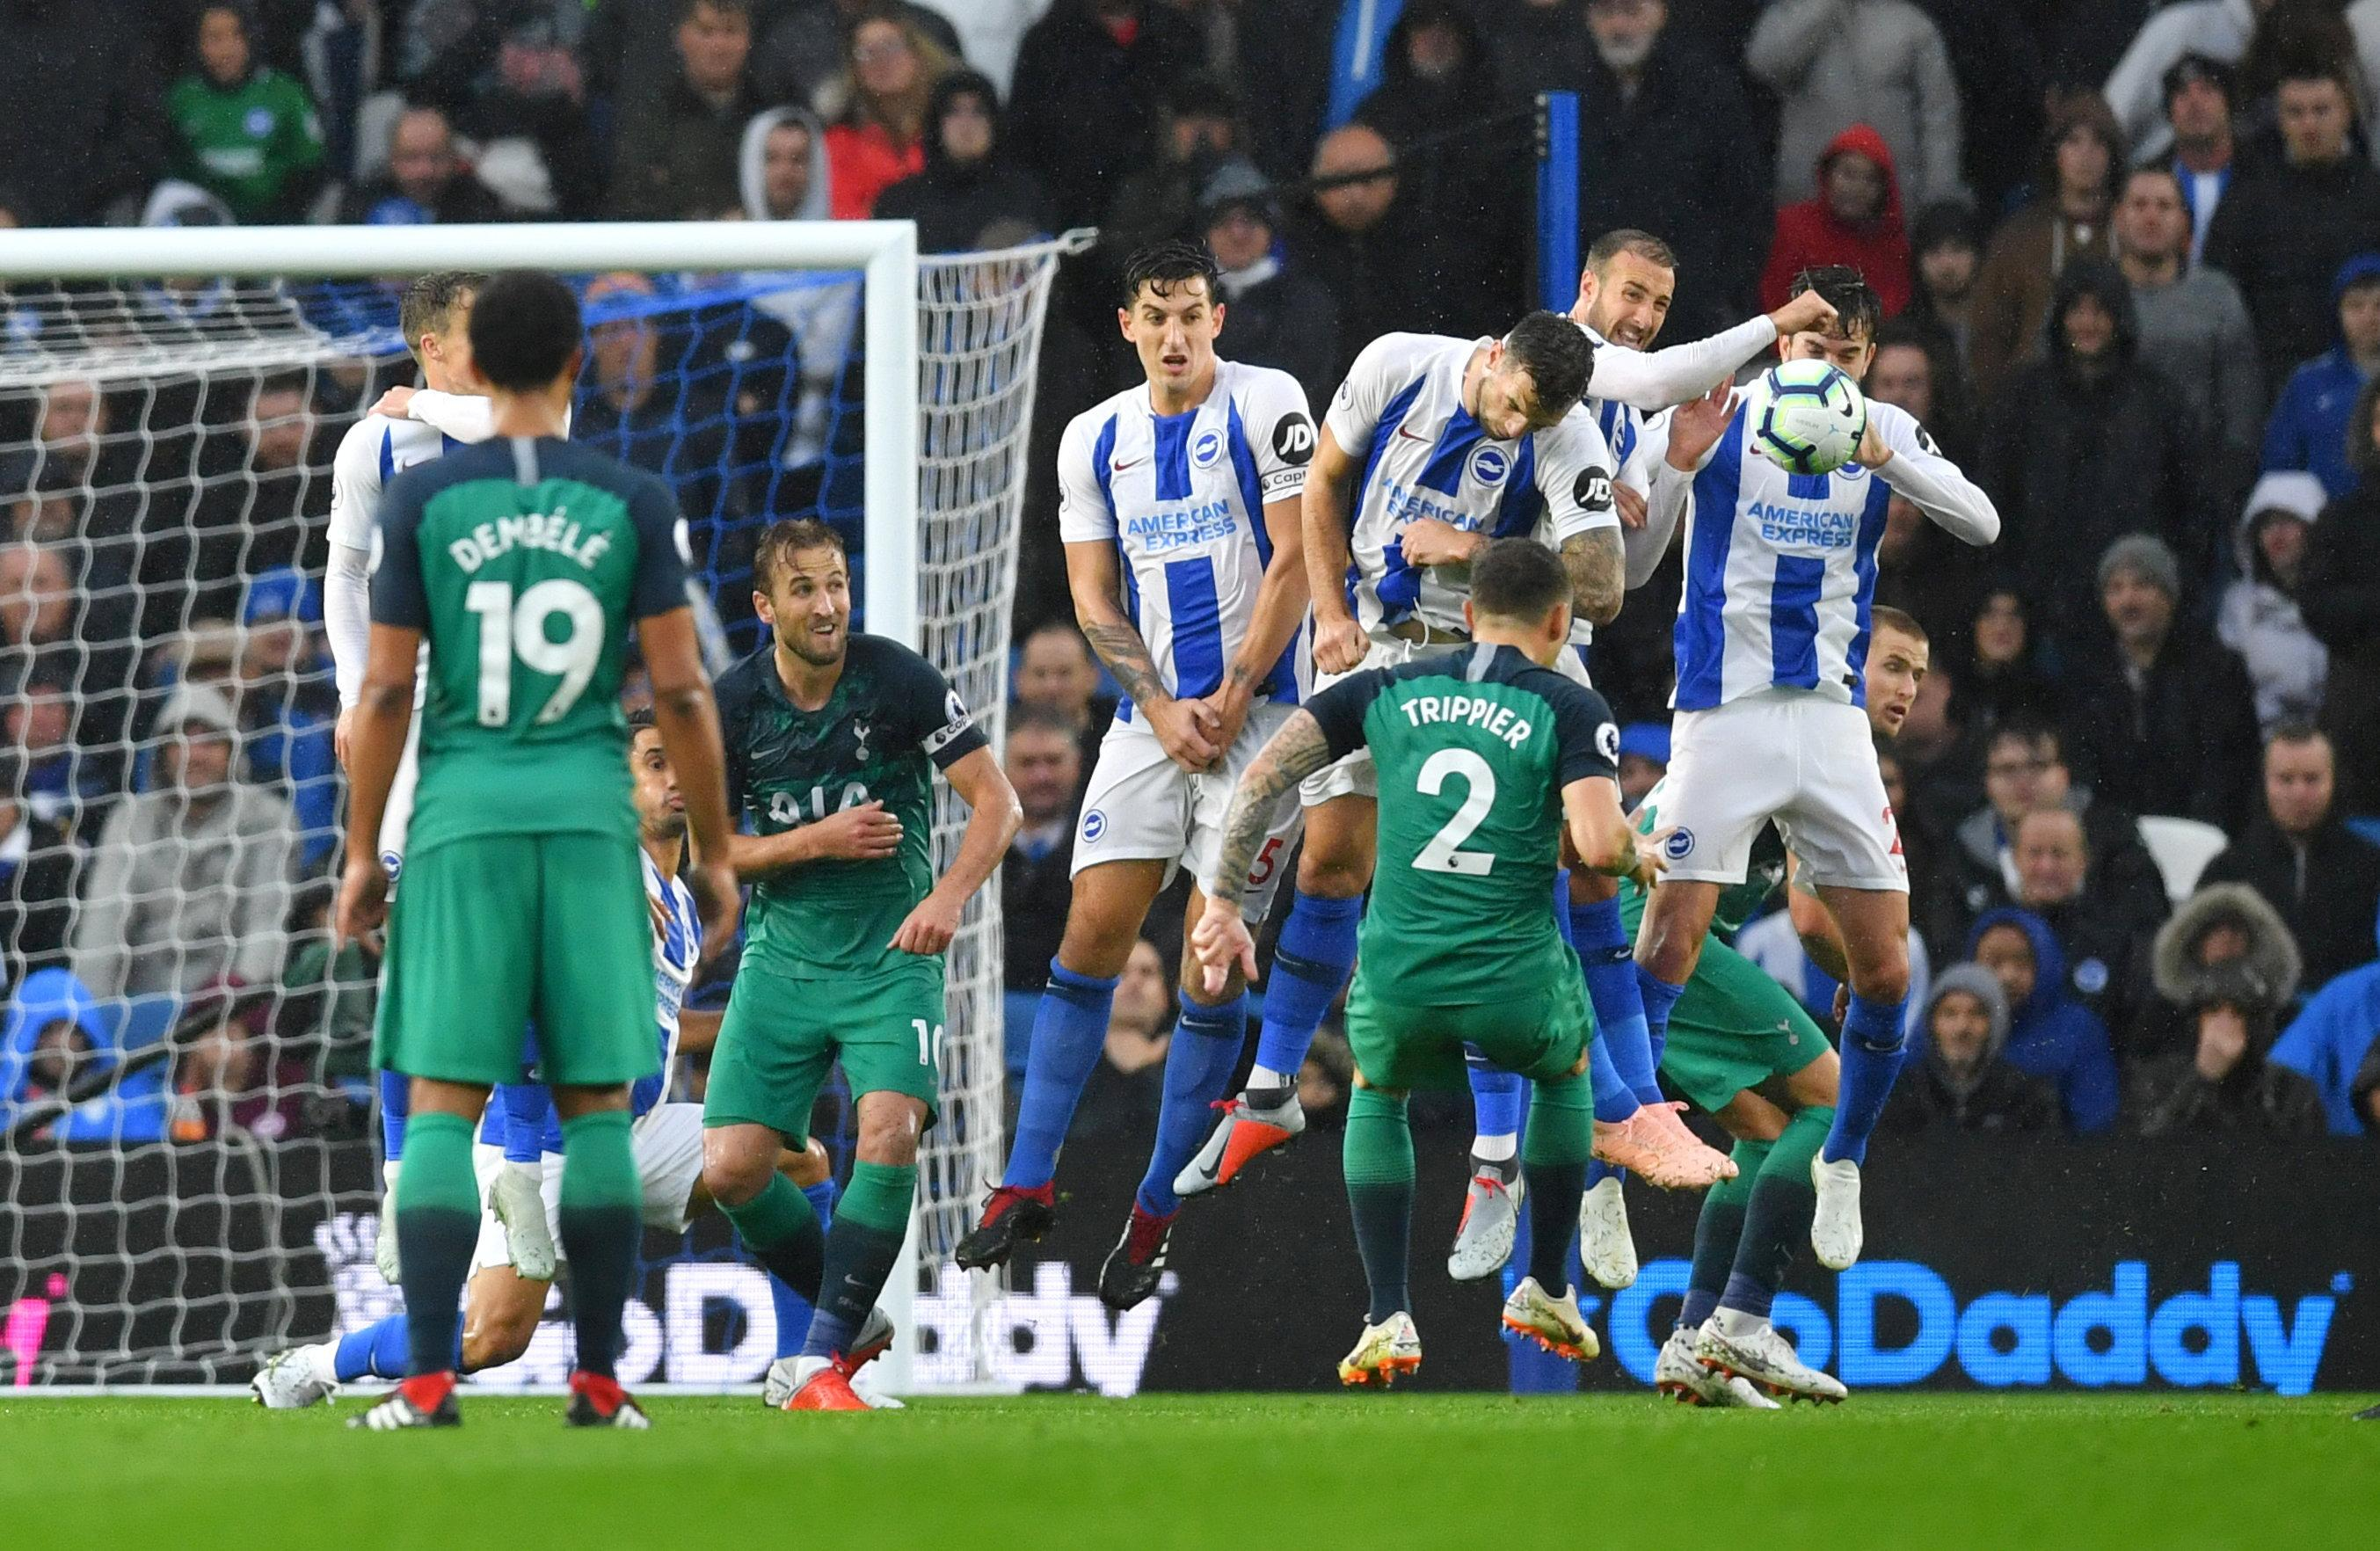 Kieran Trippier saw his free-kick hit Glenn Murray on the arm leading to the pen